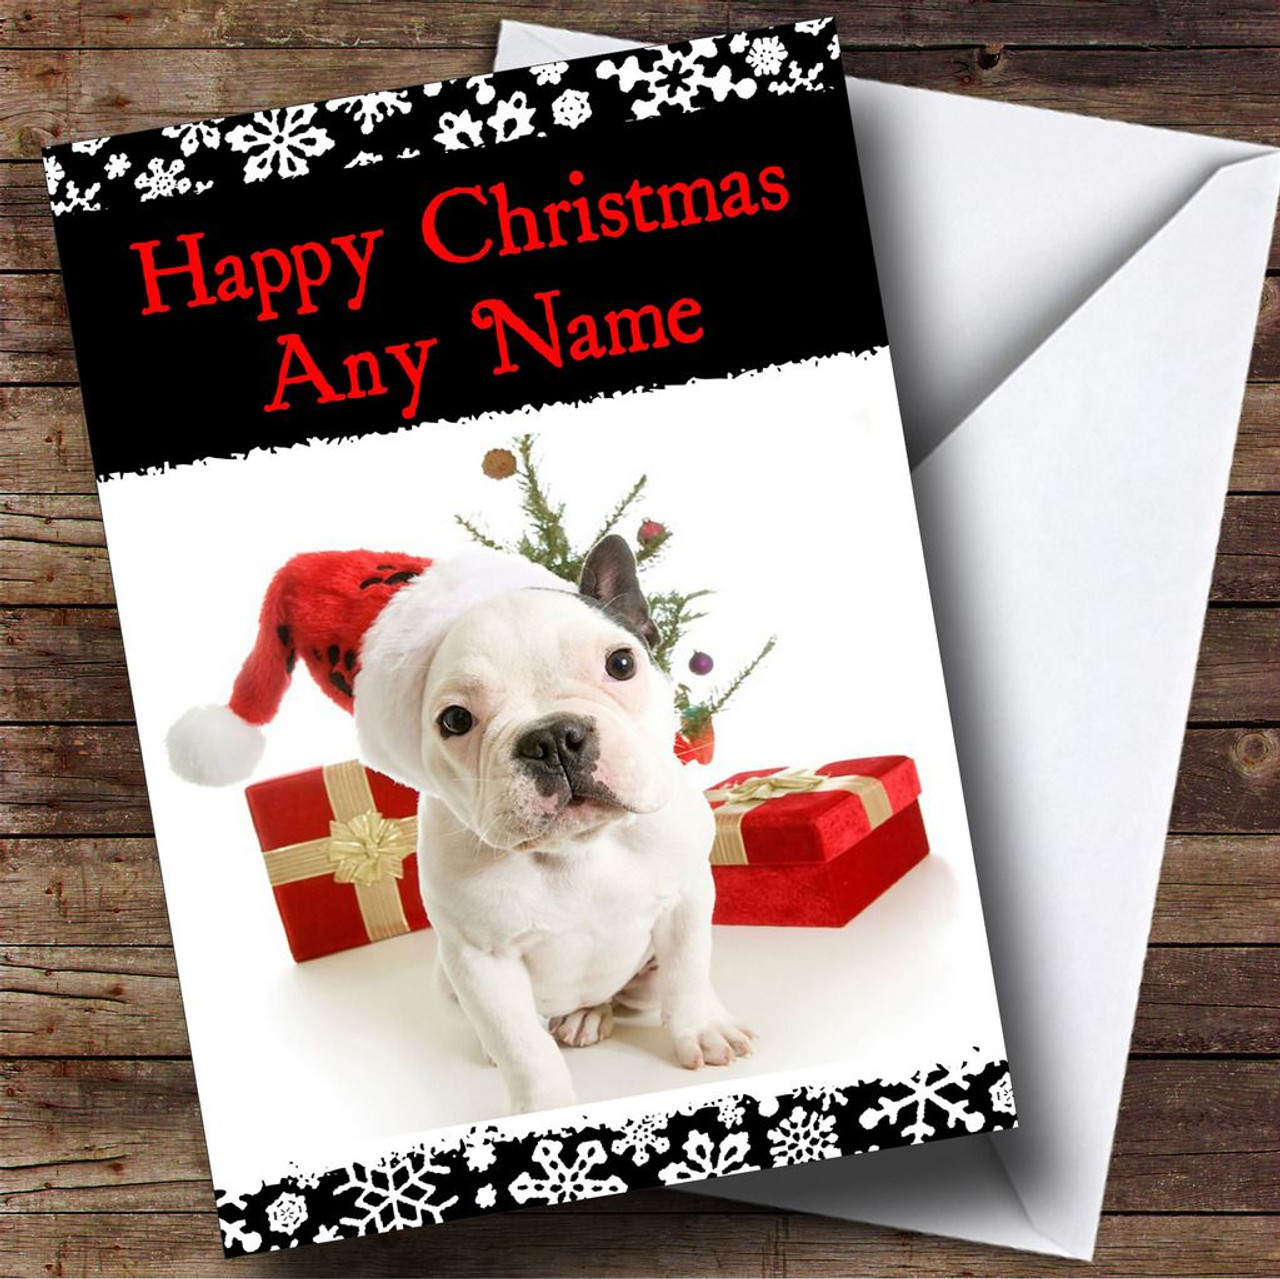 Adorable Dog Christmas Card Personalised - The Card Zoo